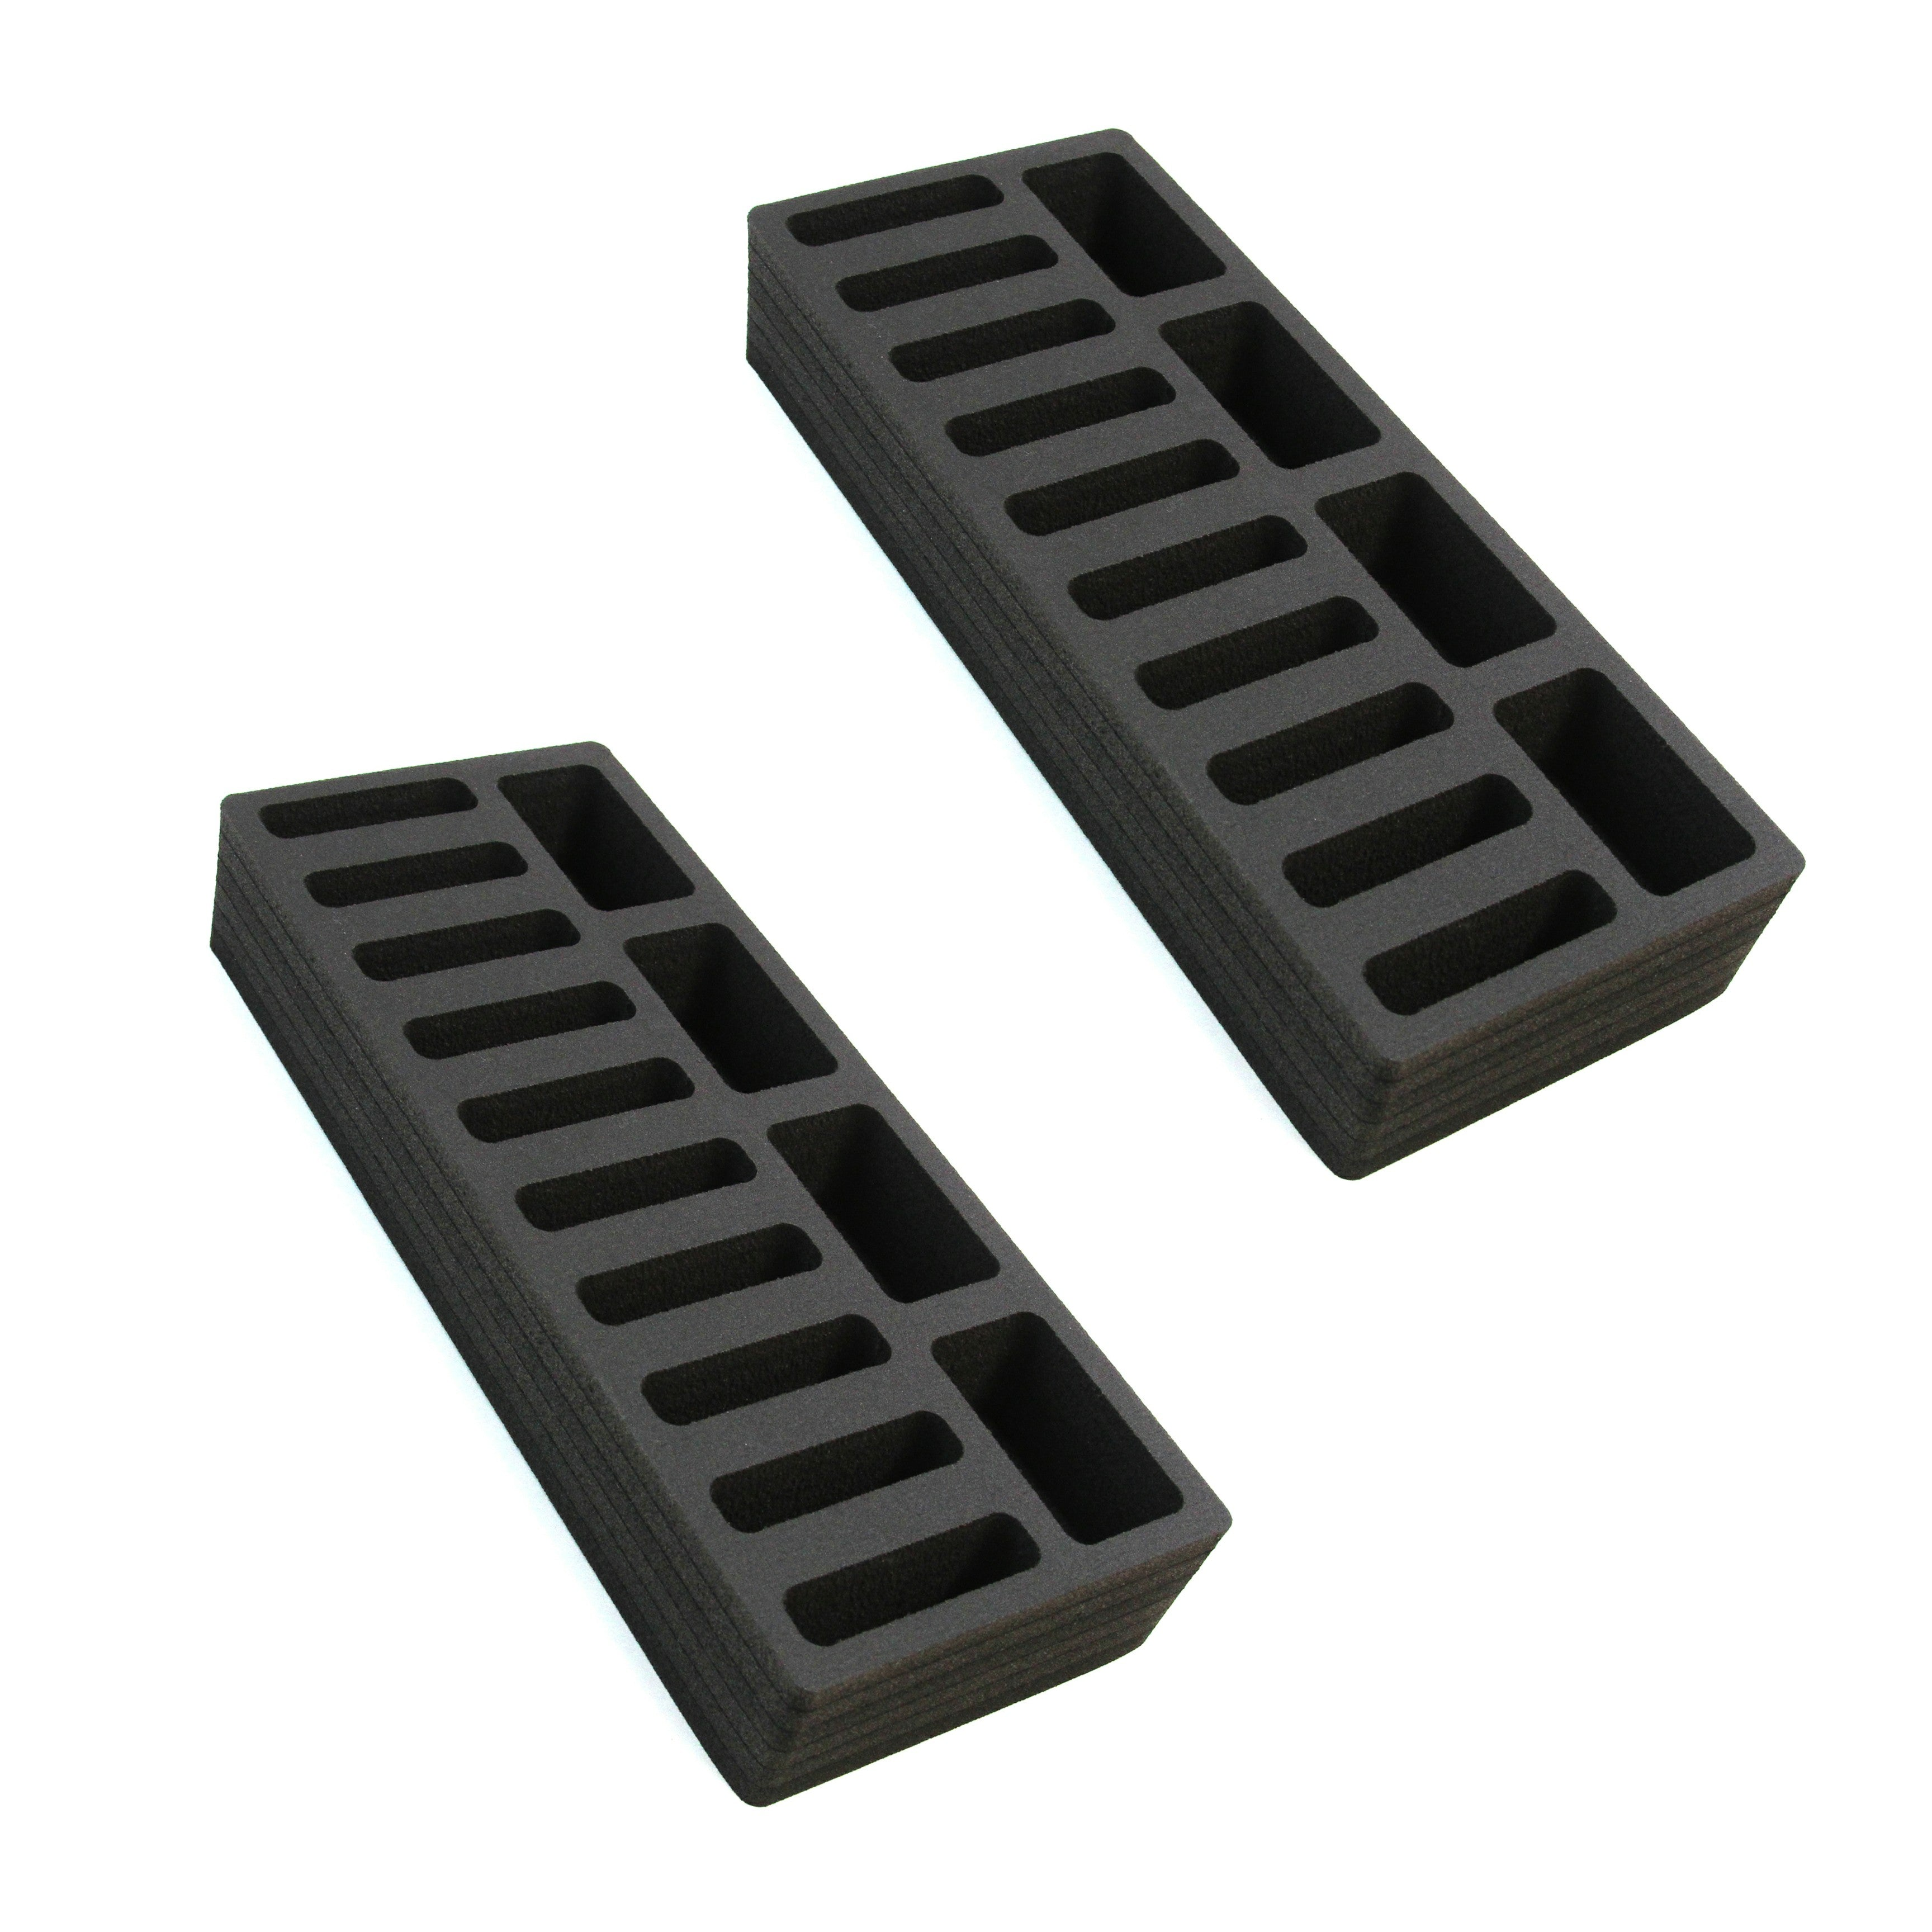 2 Compact Drawer Organizers Compatible with IKEA Alex Tray Washable Waterproof Insert 5.75 x 14.5 x 2.25 Inches 14 Compartments Black